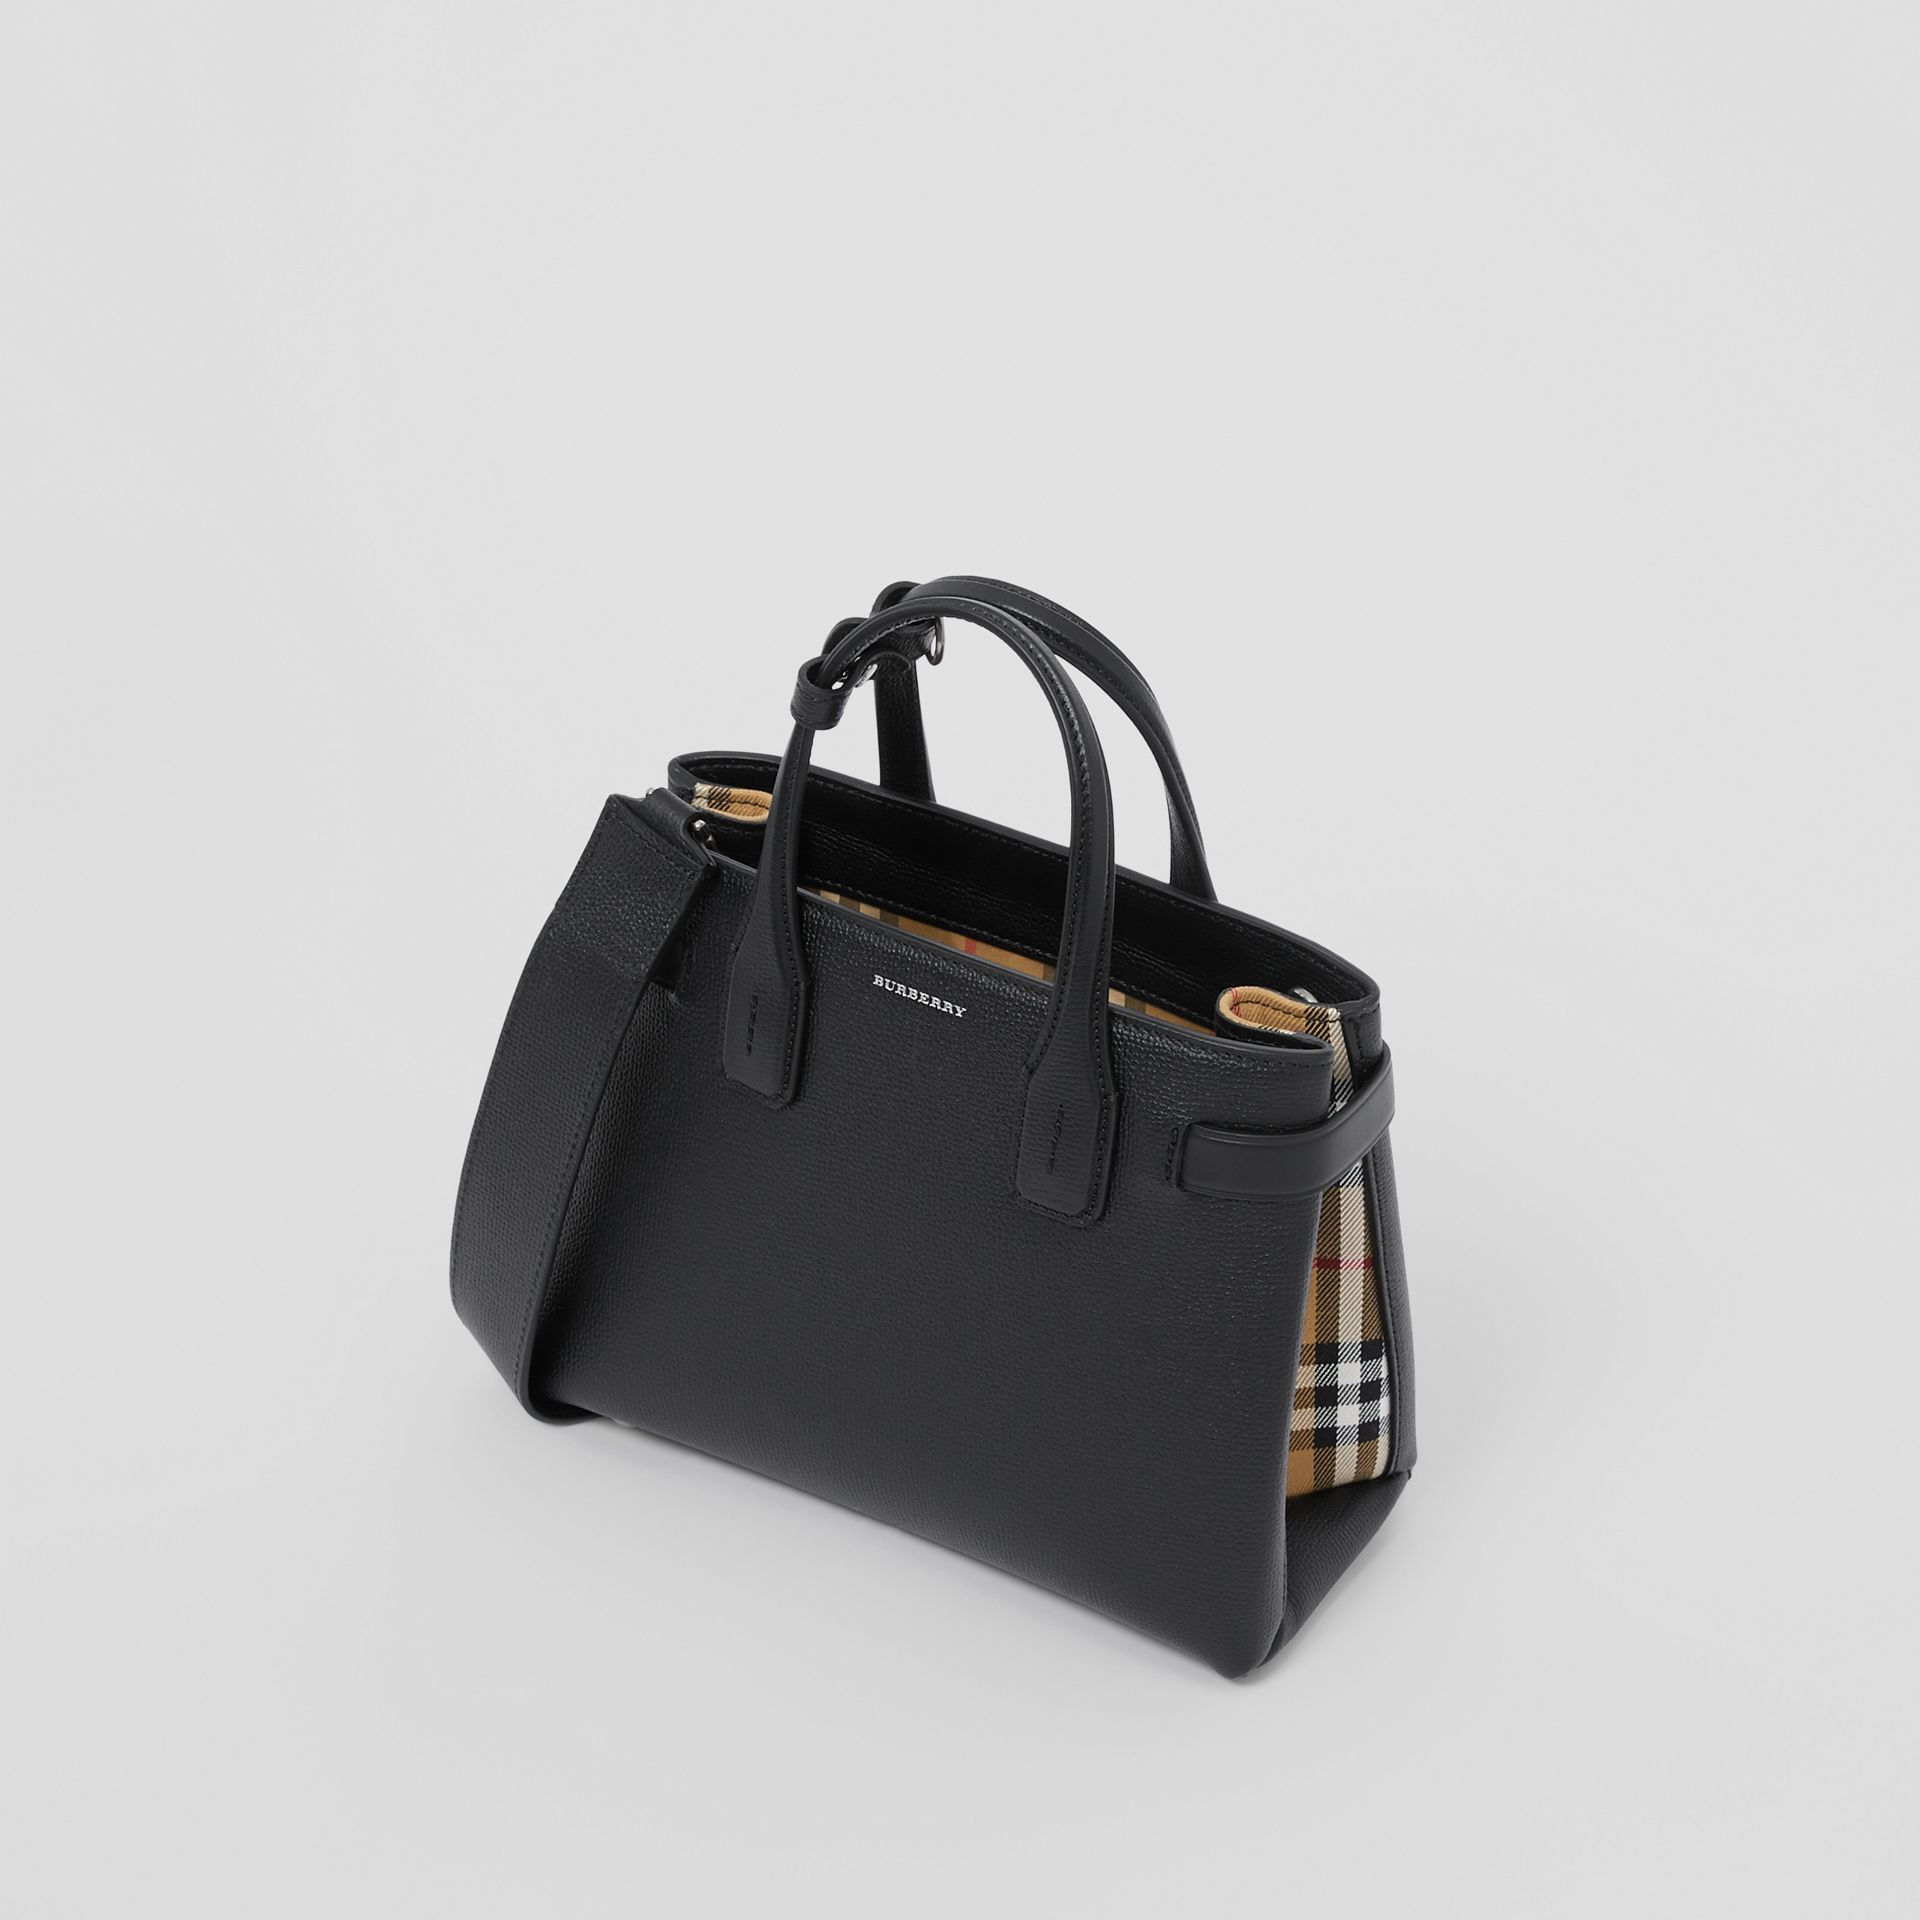 Petit sac The Banner en cuir avec Vintage check (Noir) - Femme | Burberry - photo de la galerie 2